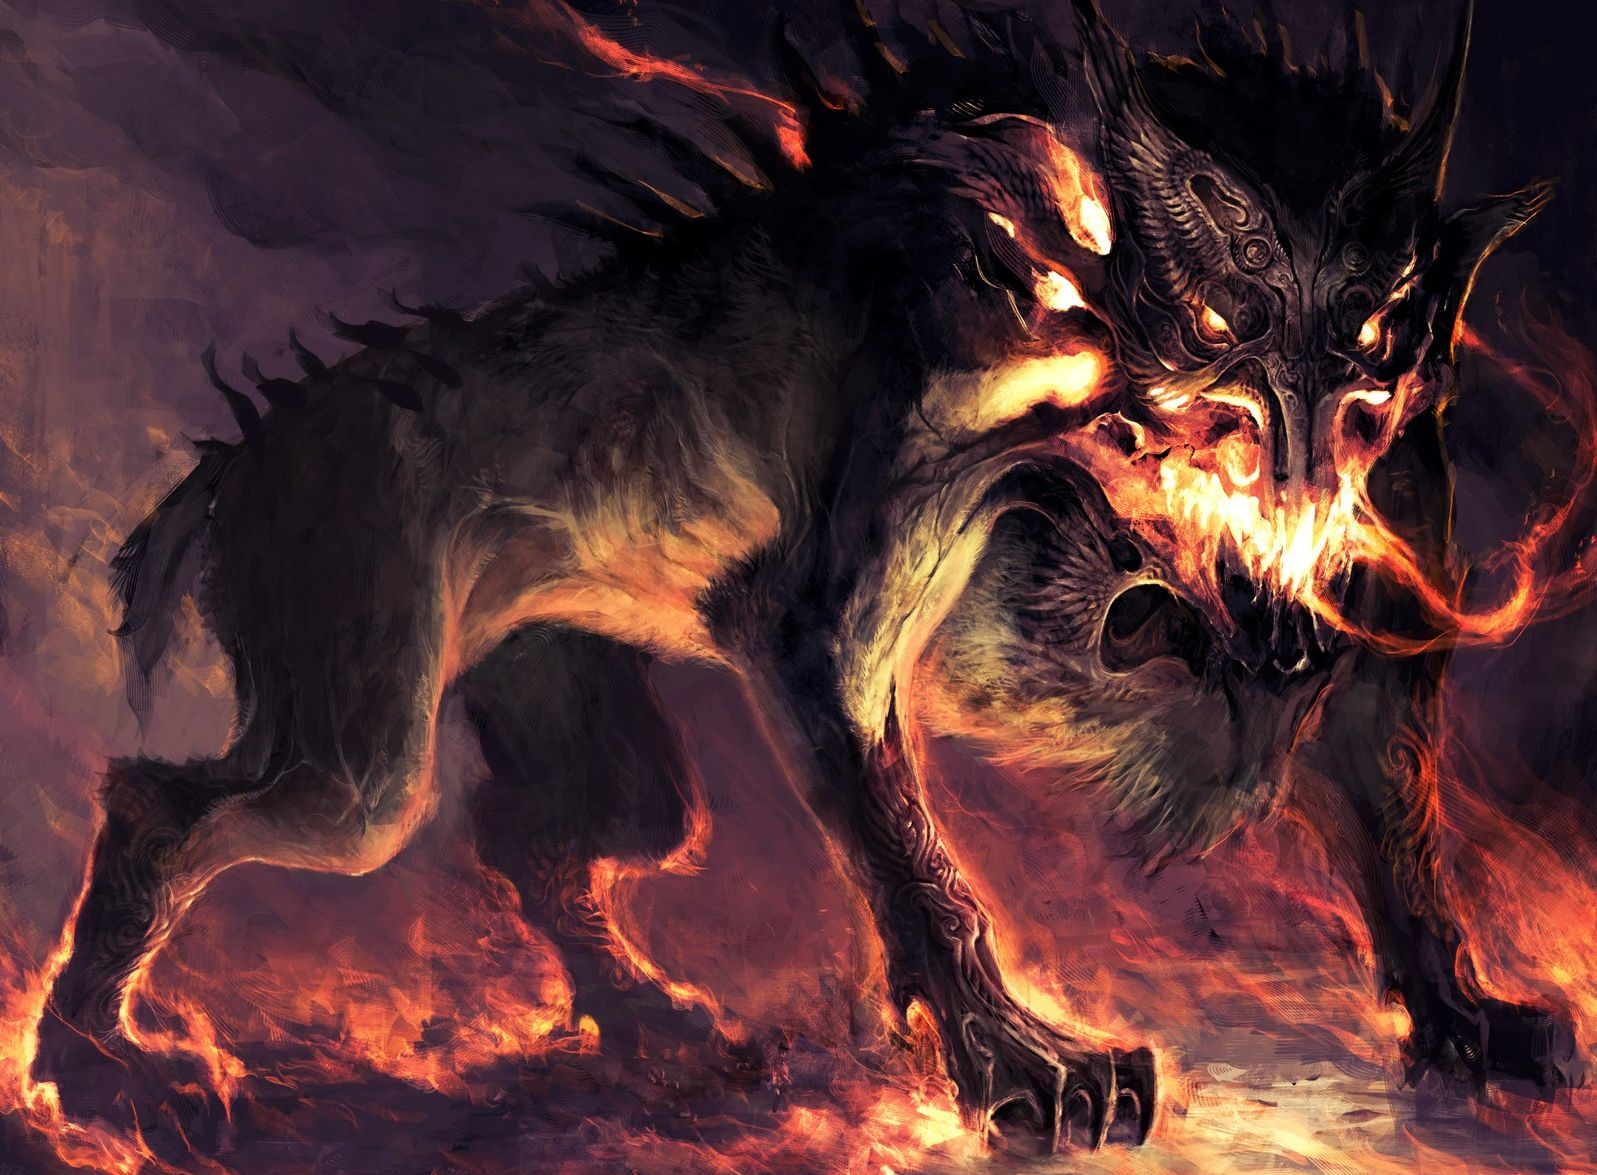 beast wolf wallpaper art - photo #44